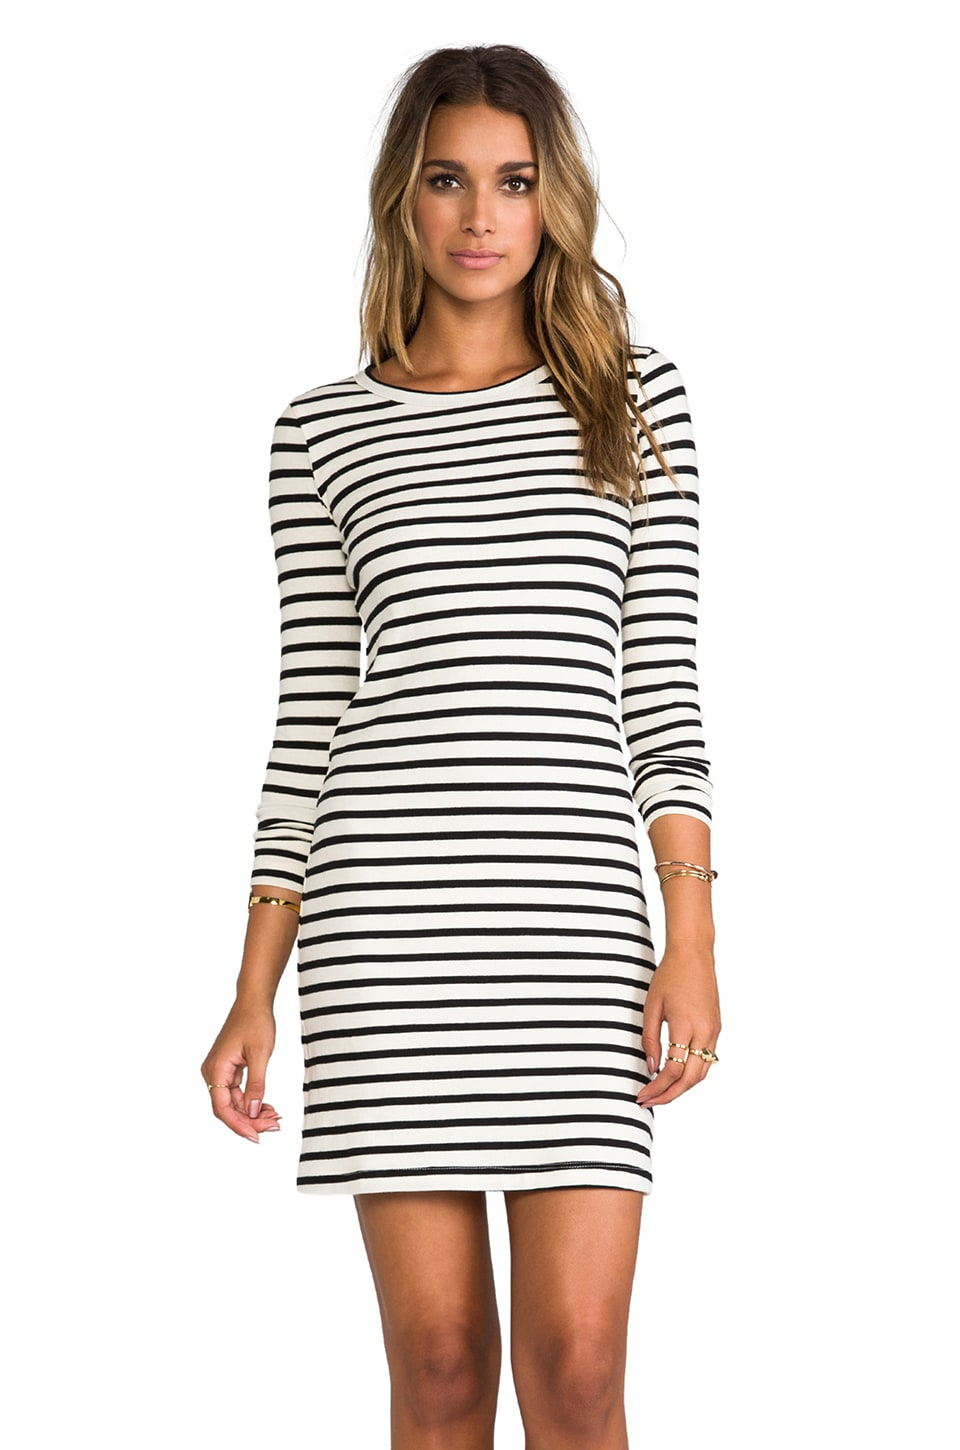 PJK Patterson J. Kincaid Chestnut Dress in Black/White